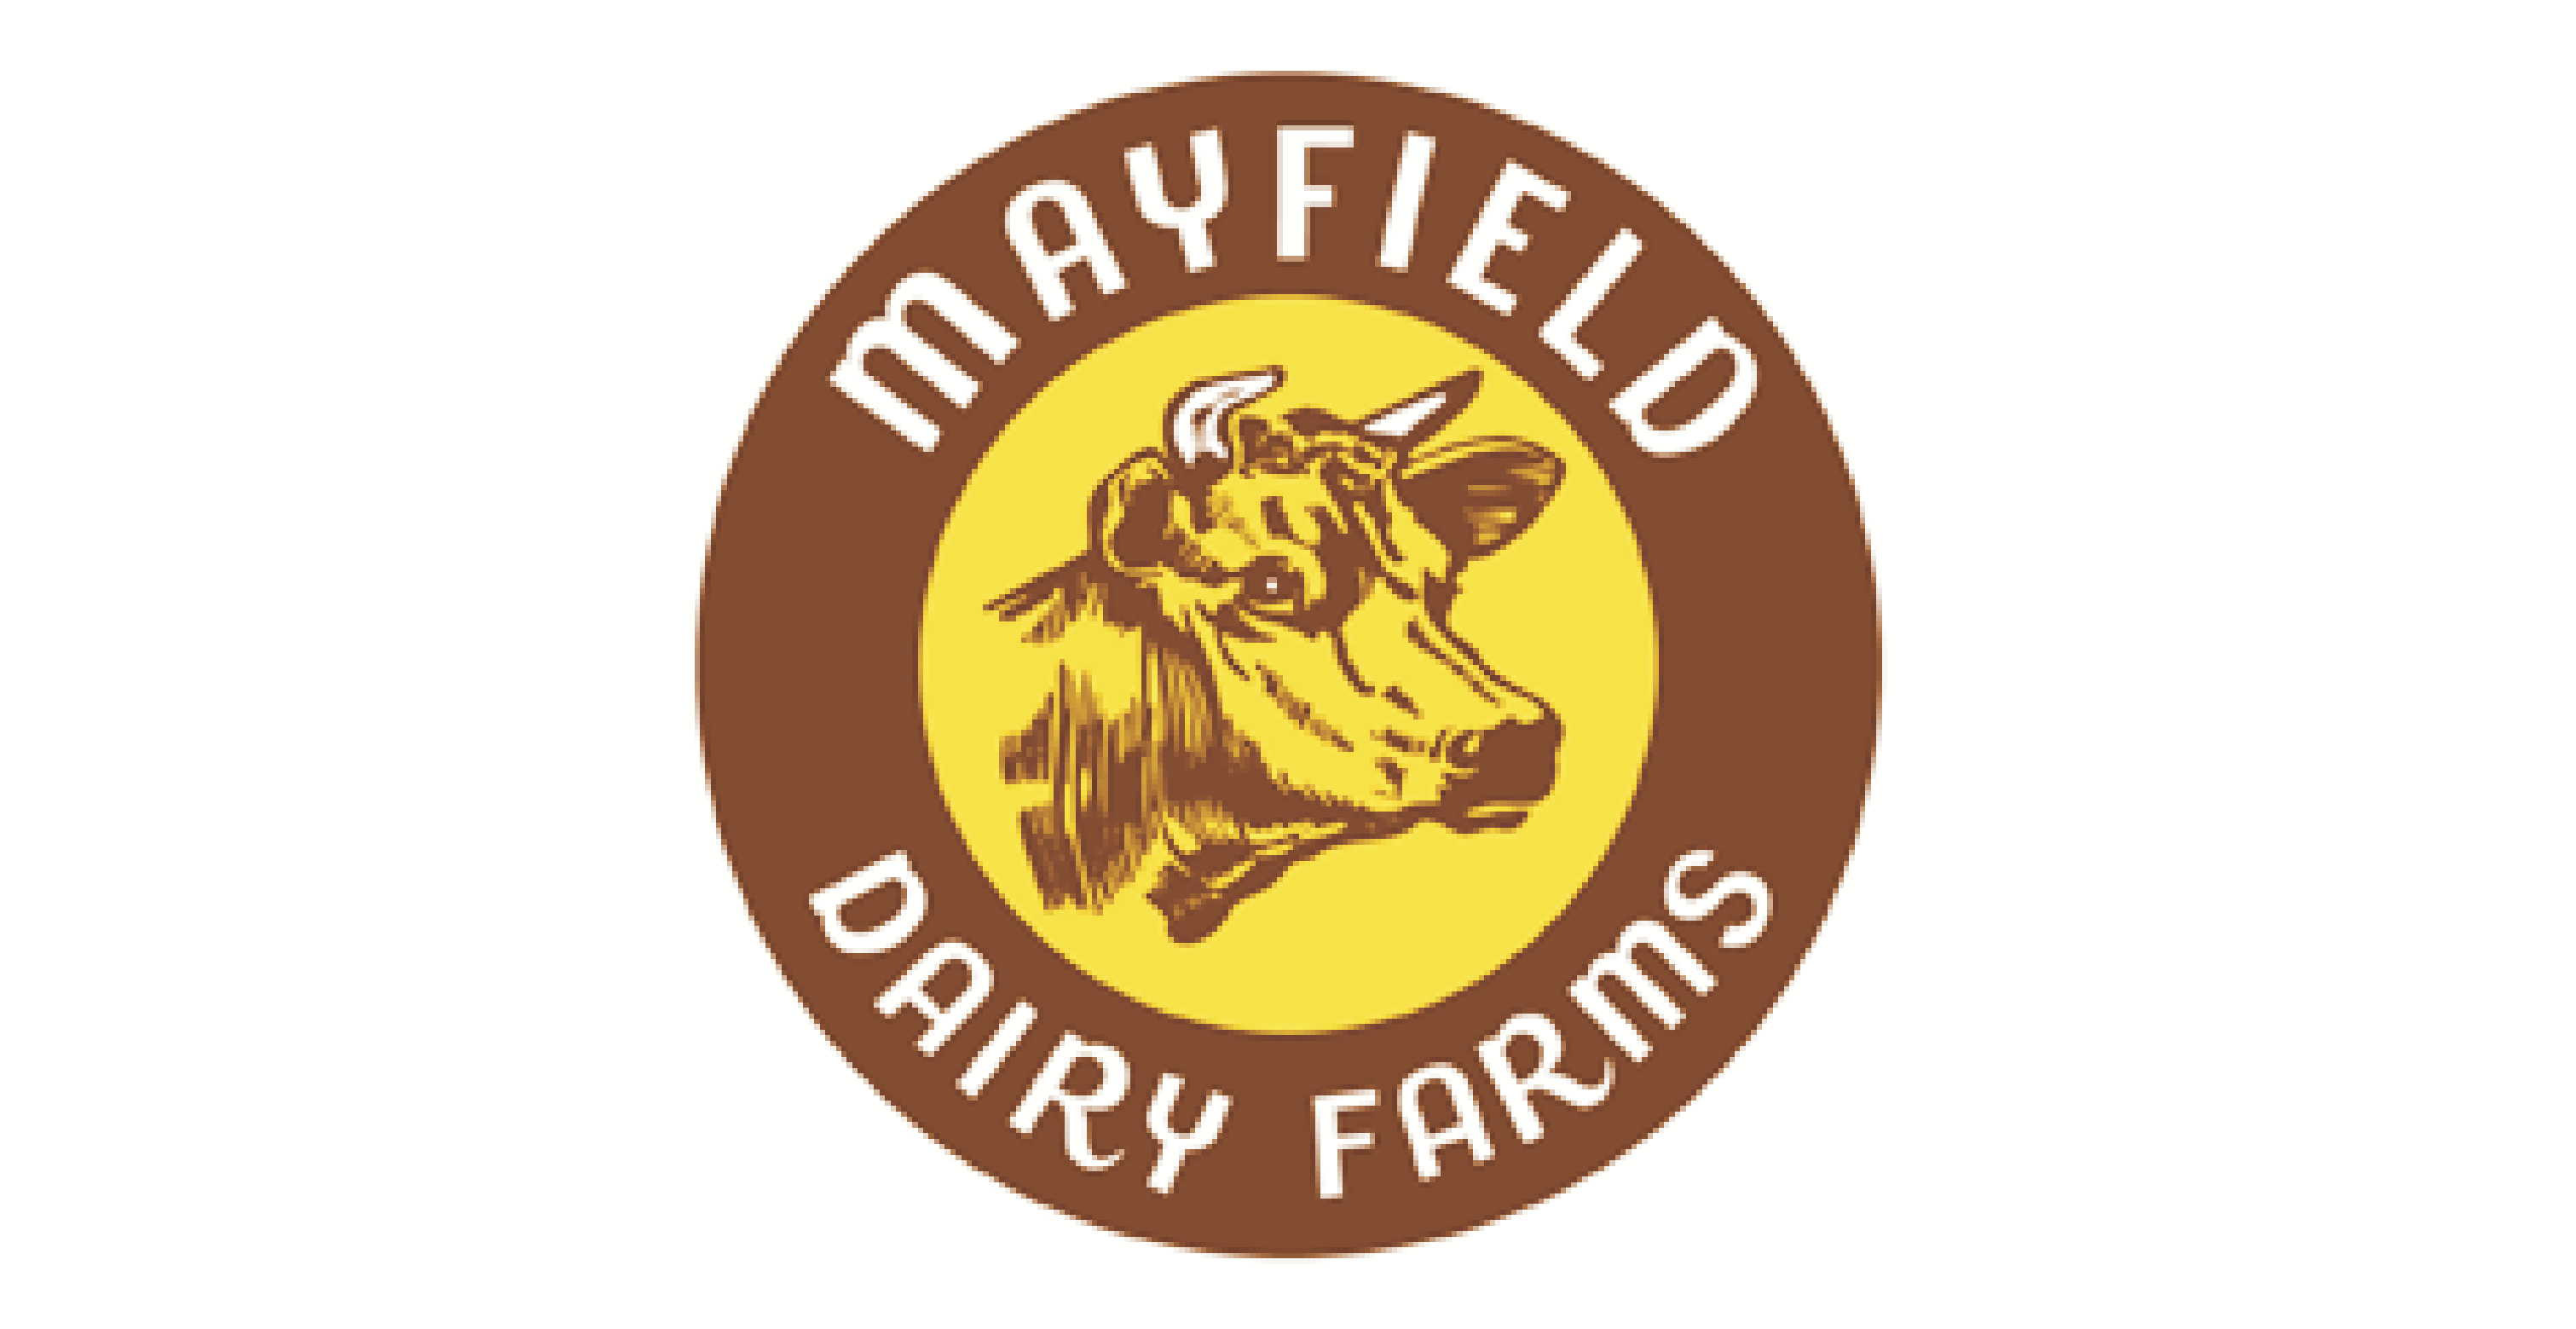 Mayfield Dairy Farms